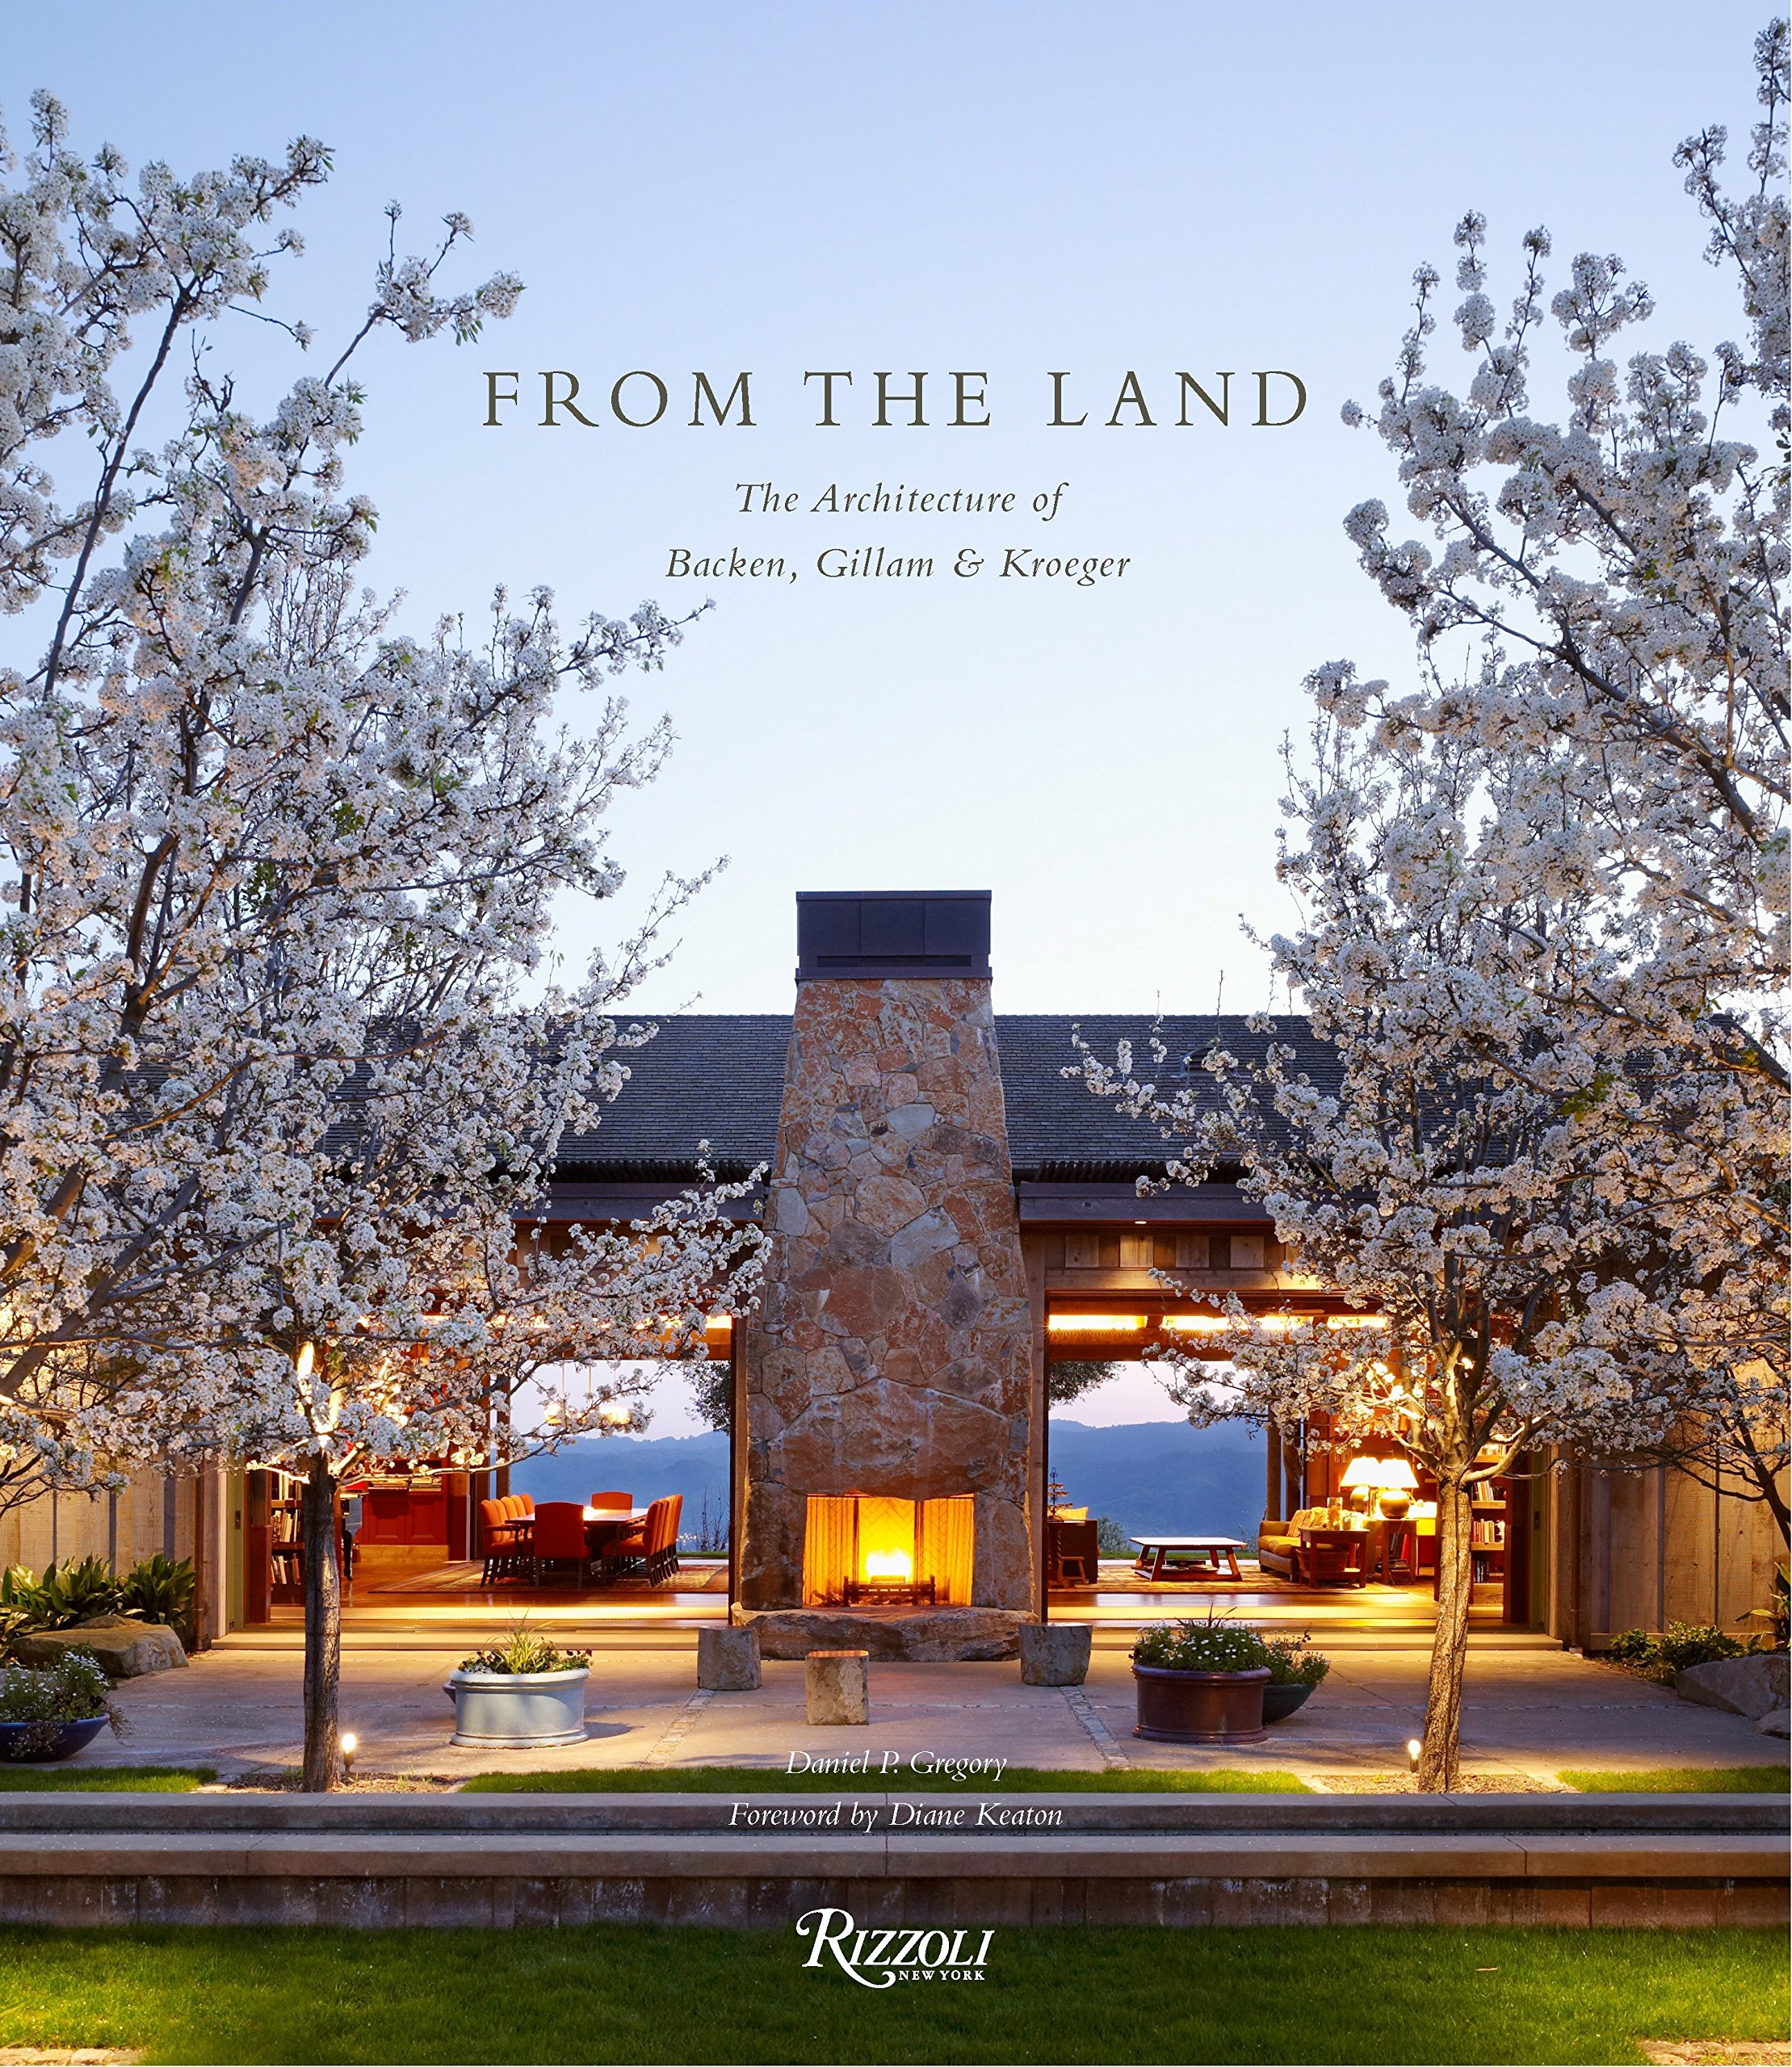 From the Land: Backen, Gillam, & Kroeger Architects by Daniel Gregory